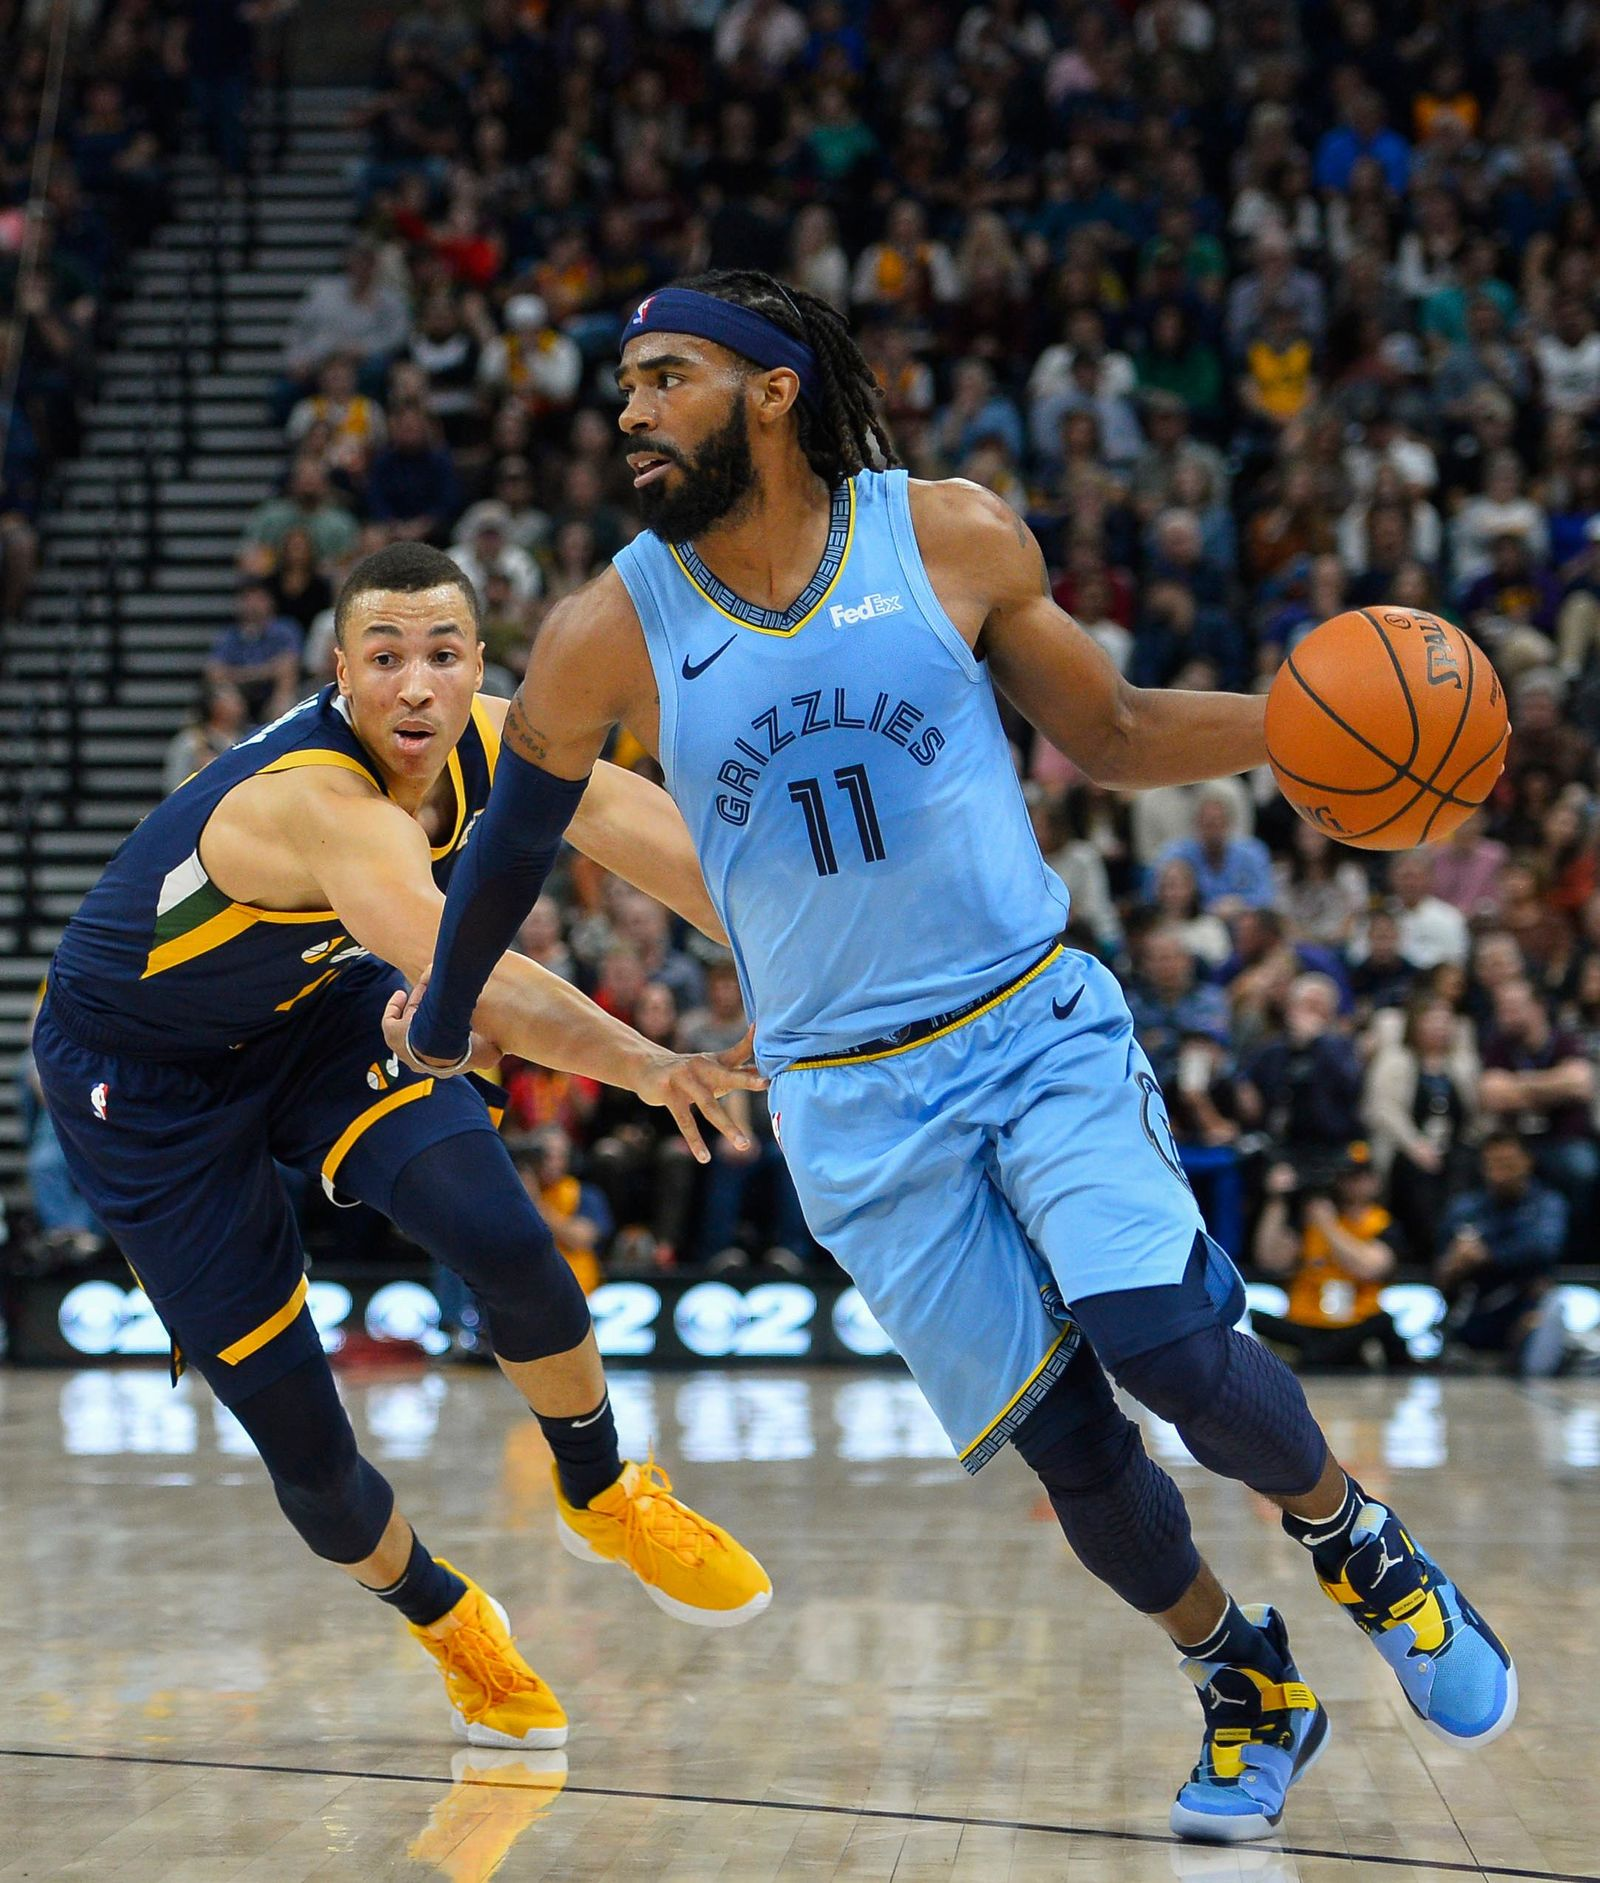 Memphis Grizzlies guard Mike Conley (11) drives past Utah Jazz guard Dante Exum (11) during the first half of an NBA basketball game Friday, Nov. 2, 2018, in Salt Lake City. (AP Photo/Alex Goodlett)